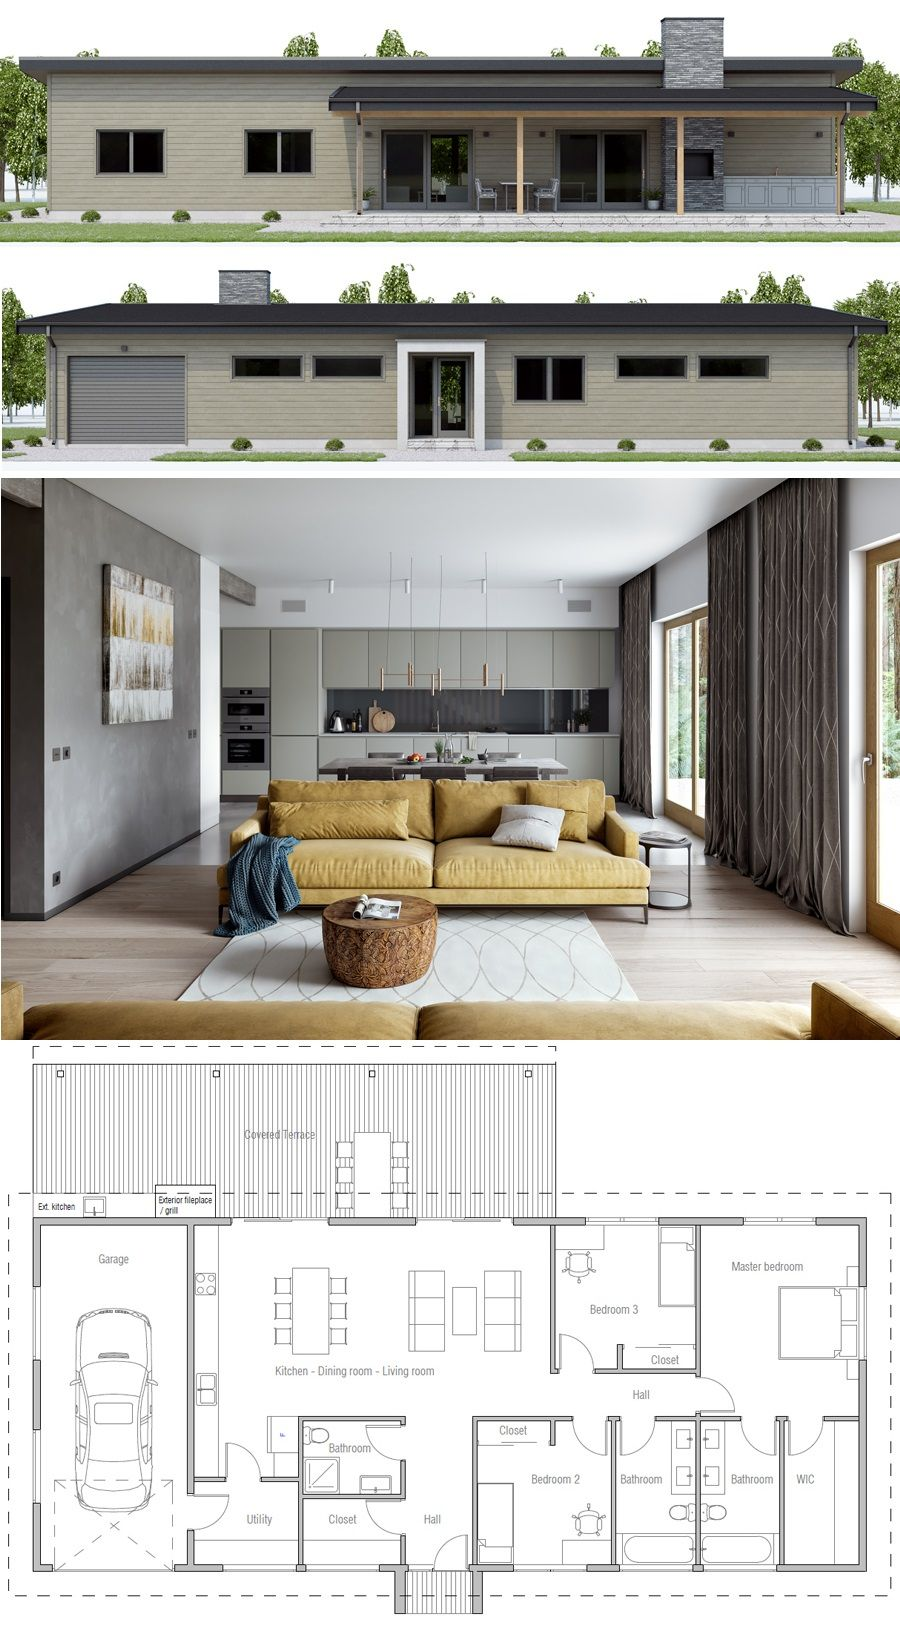 Small house plans houses homes smallhouse newhome adhouseplans also rh pinterest